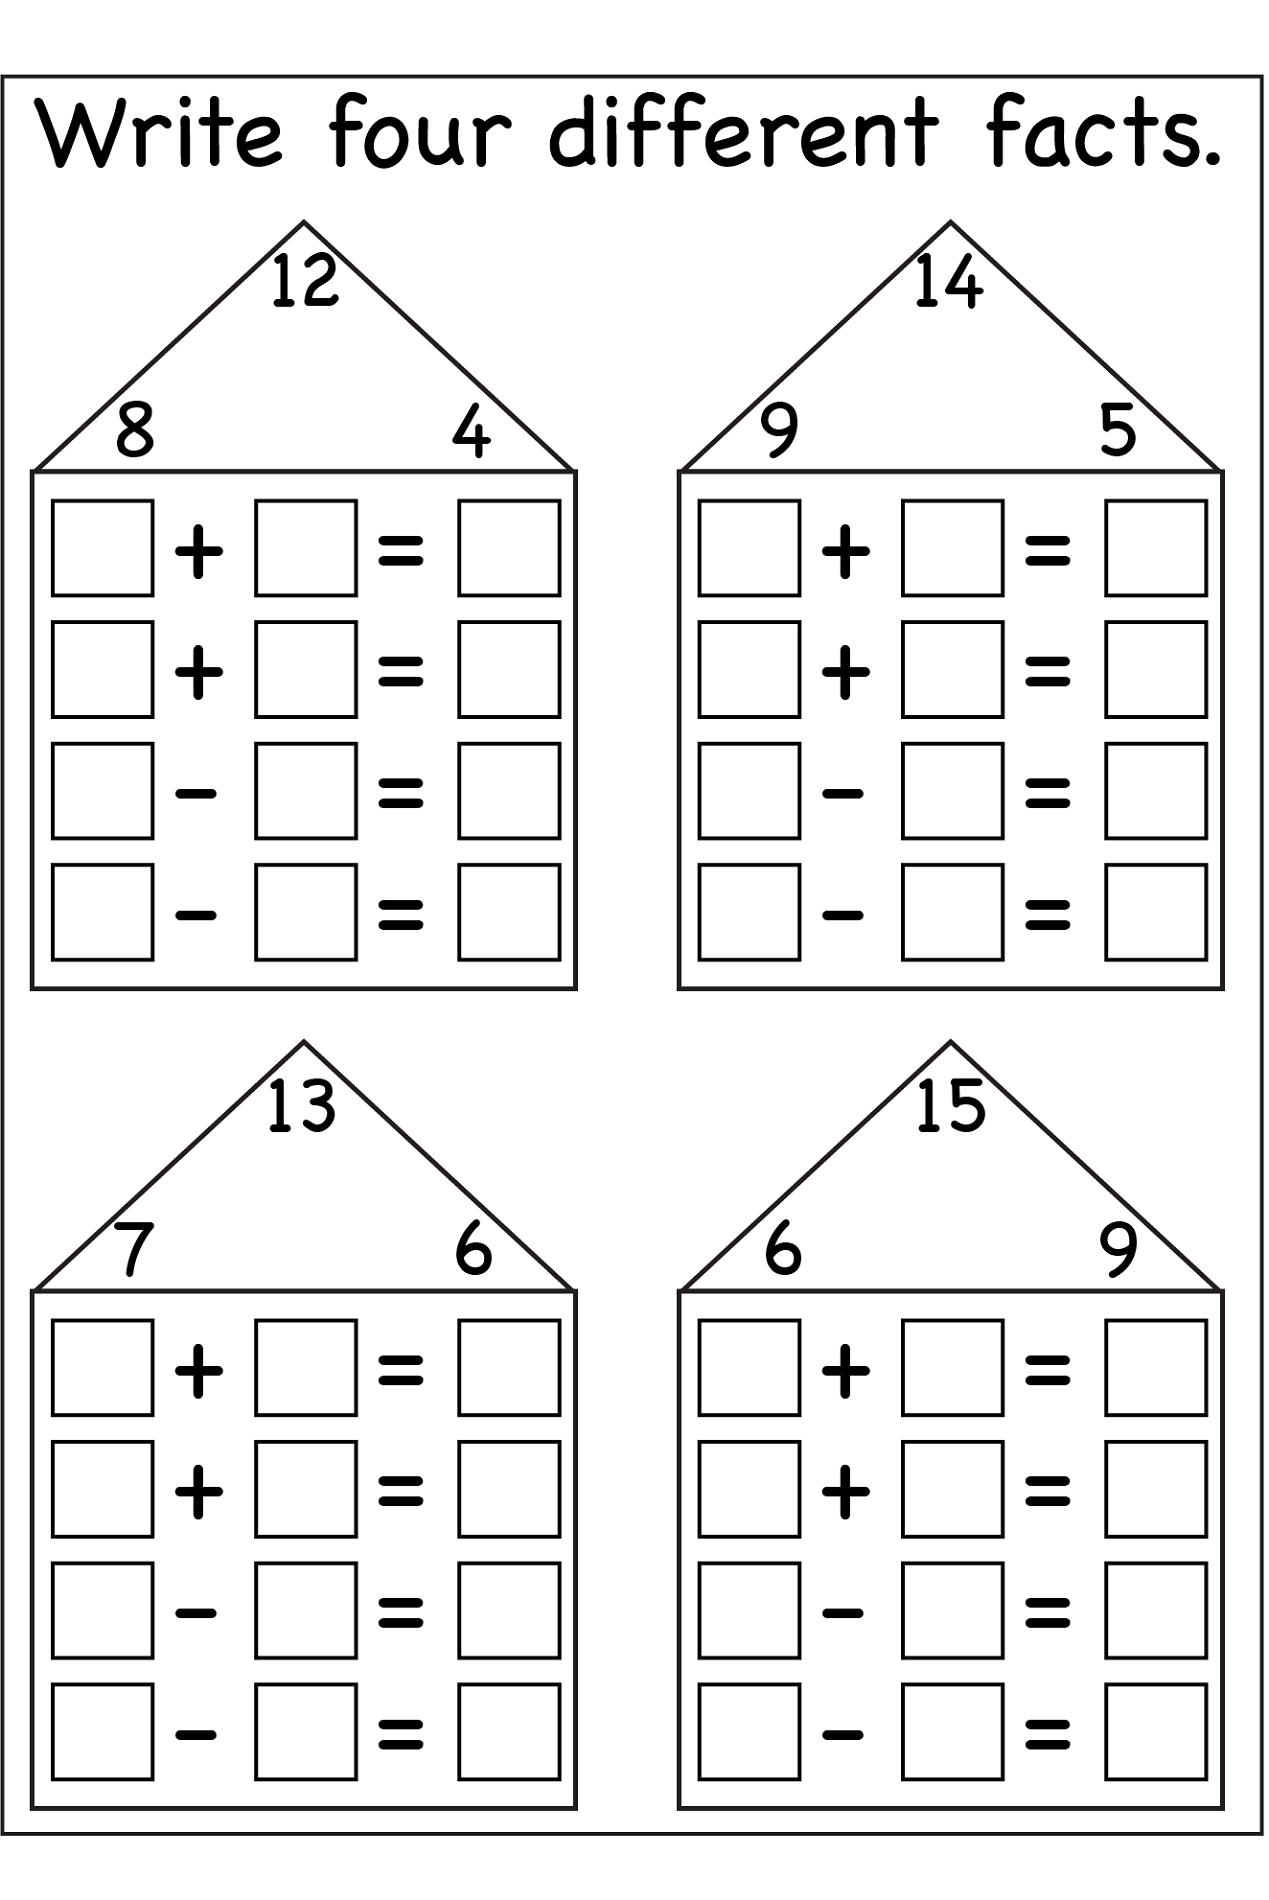 Blank Fact Family Worksheets – Fact Families Addition and Subtraction Worksheets